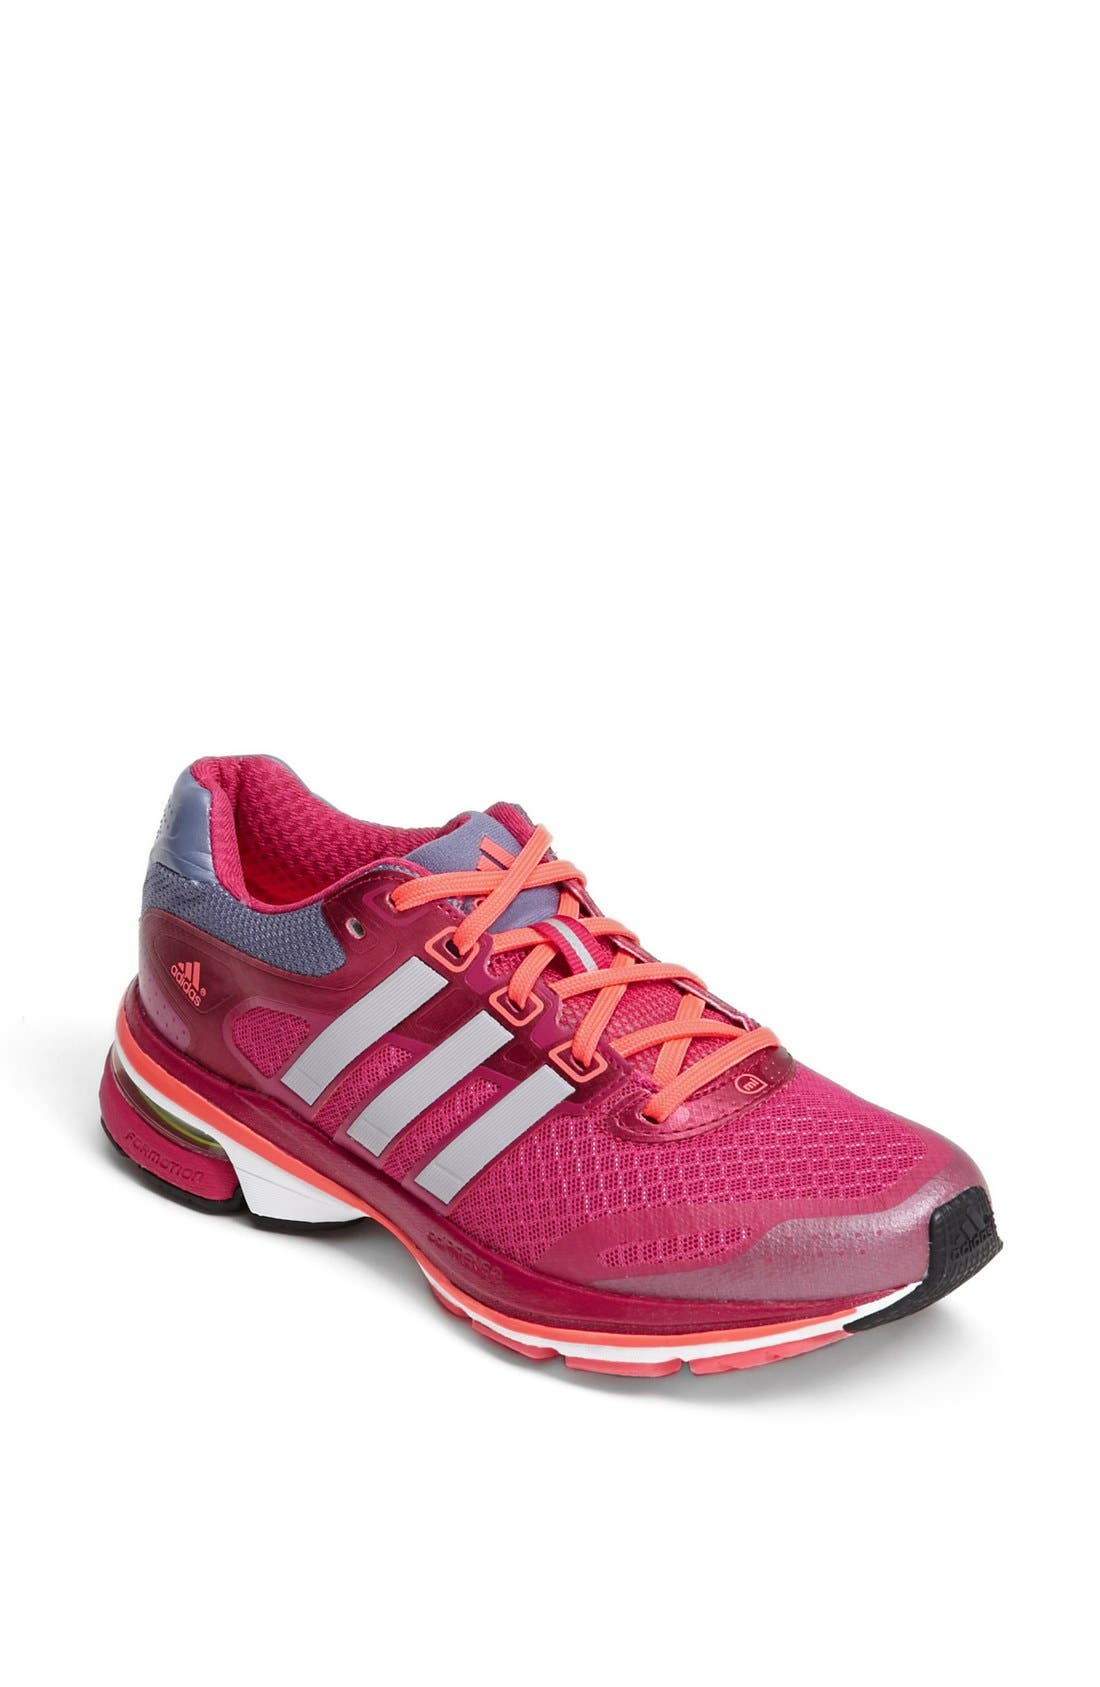 Alternate Image 1 Selected - adidas 'Supernova Glide 5' Running Shoe (Women)